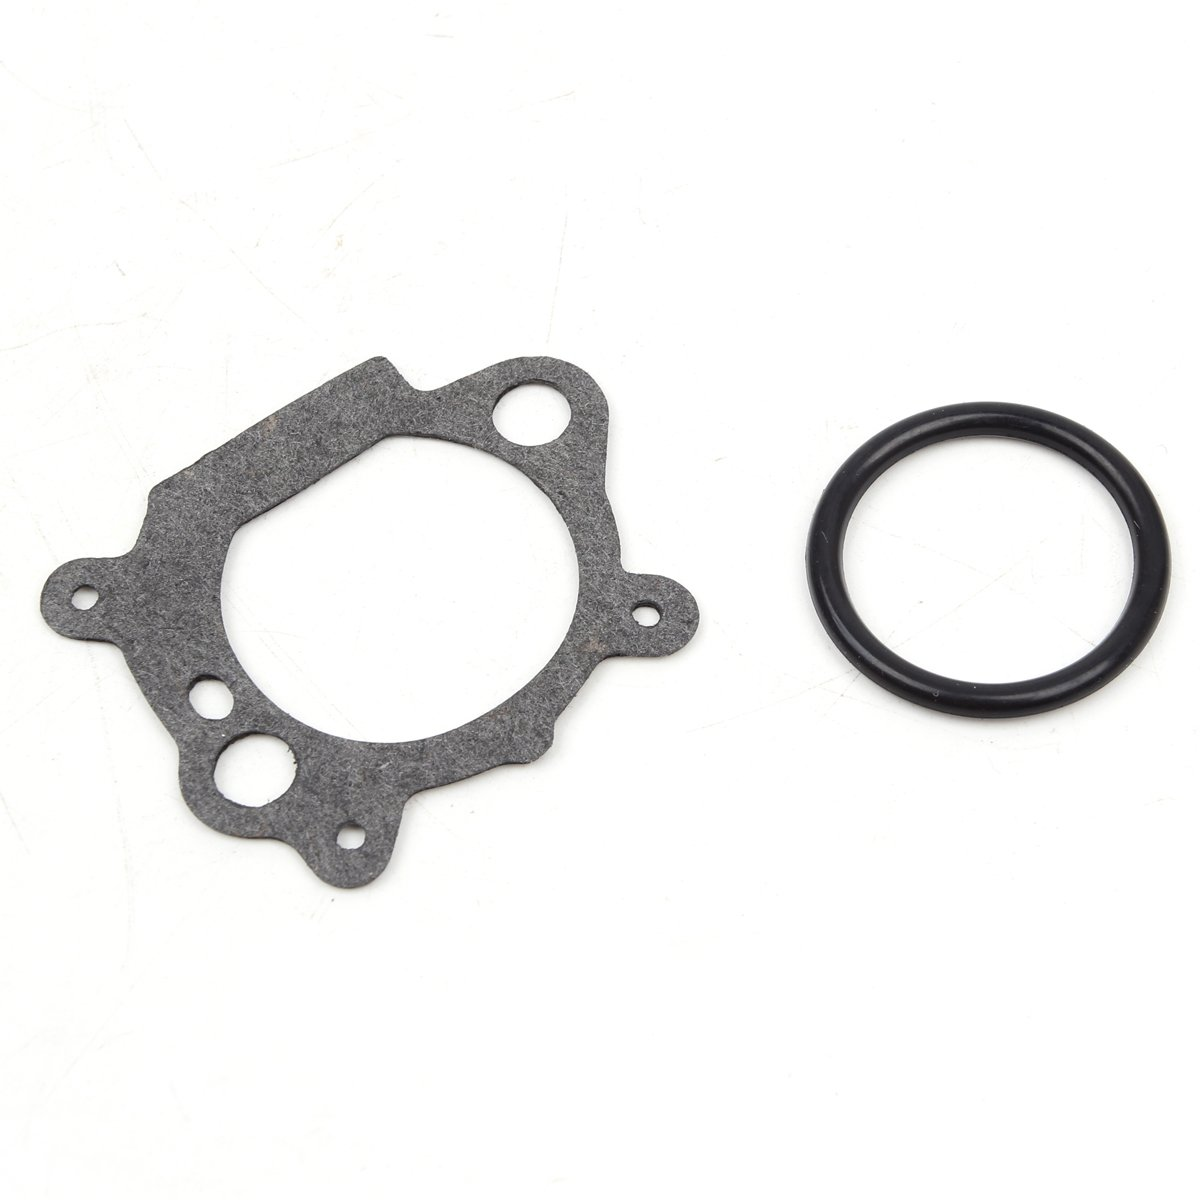 wingsmoto Vergaser f/ür Briggs /& Stratton 799868/498170/694202/W//Dichtung /& O-Ring Rasen Rasenm/äher Motor Carb